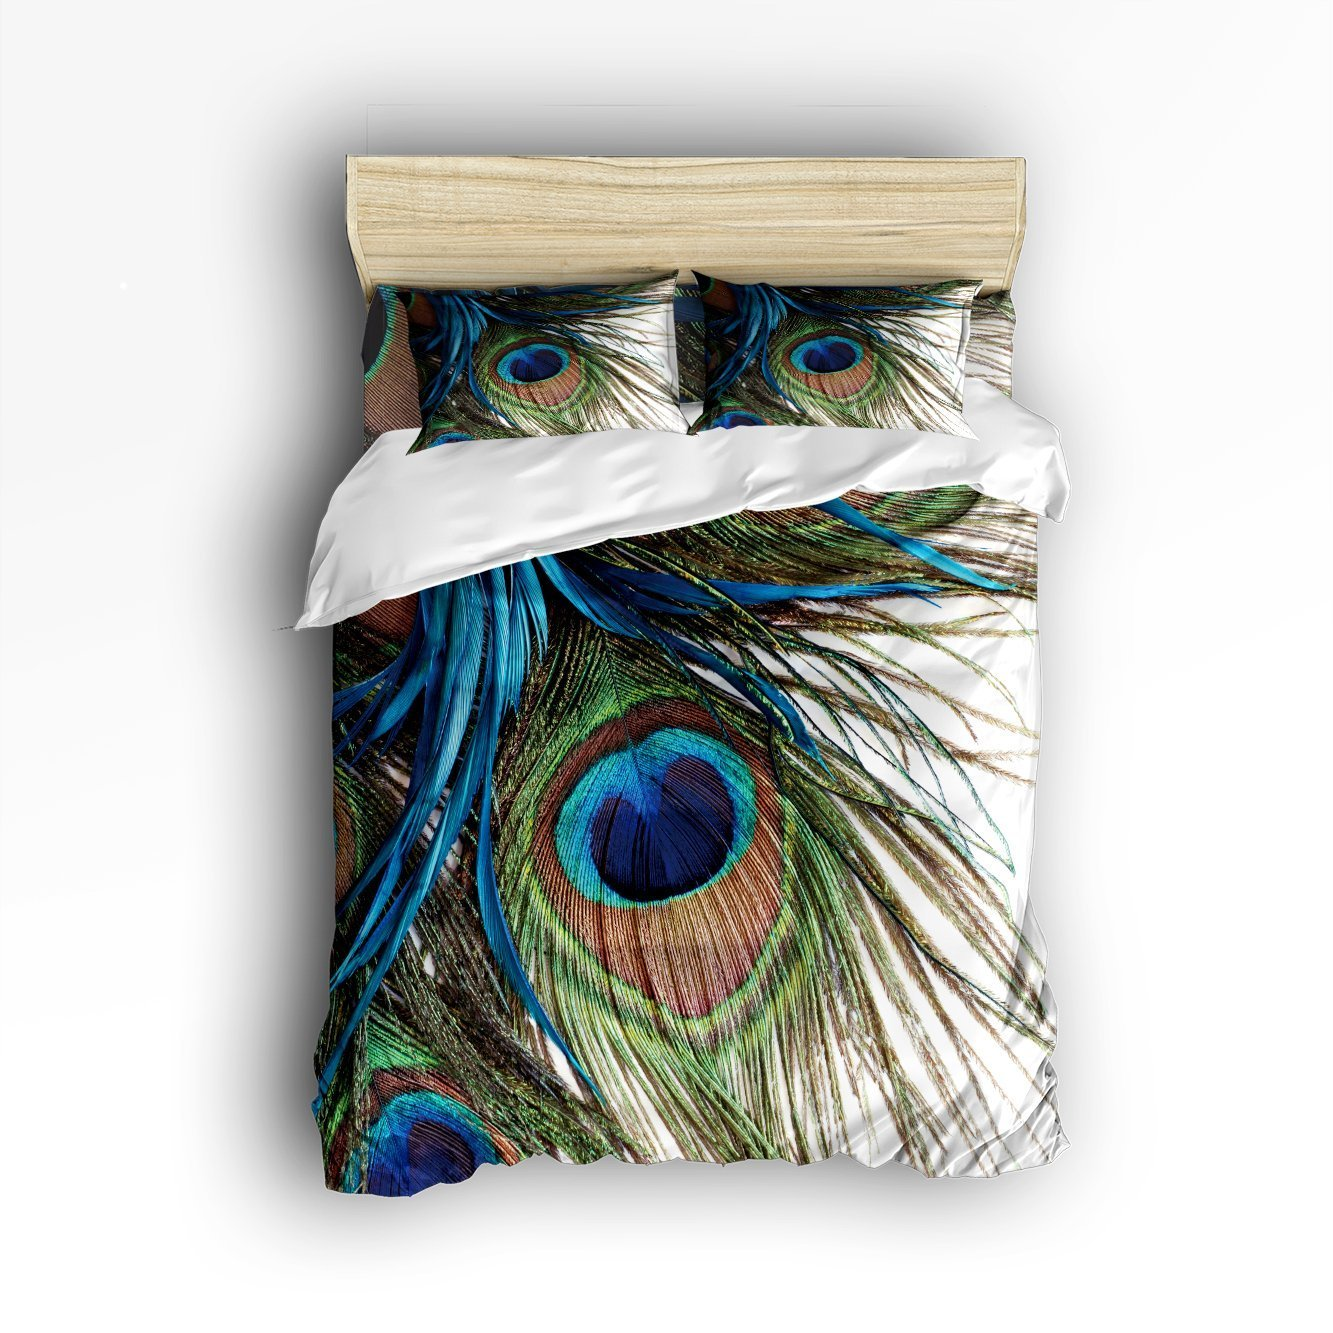 4 Pieces Peacock Pattern Bedding Set- King Size,Animal Print Duvet Cover Set Bedspread for Childrens/Kids/Teens/AdultsQueen Size